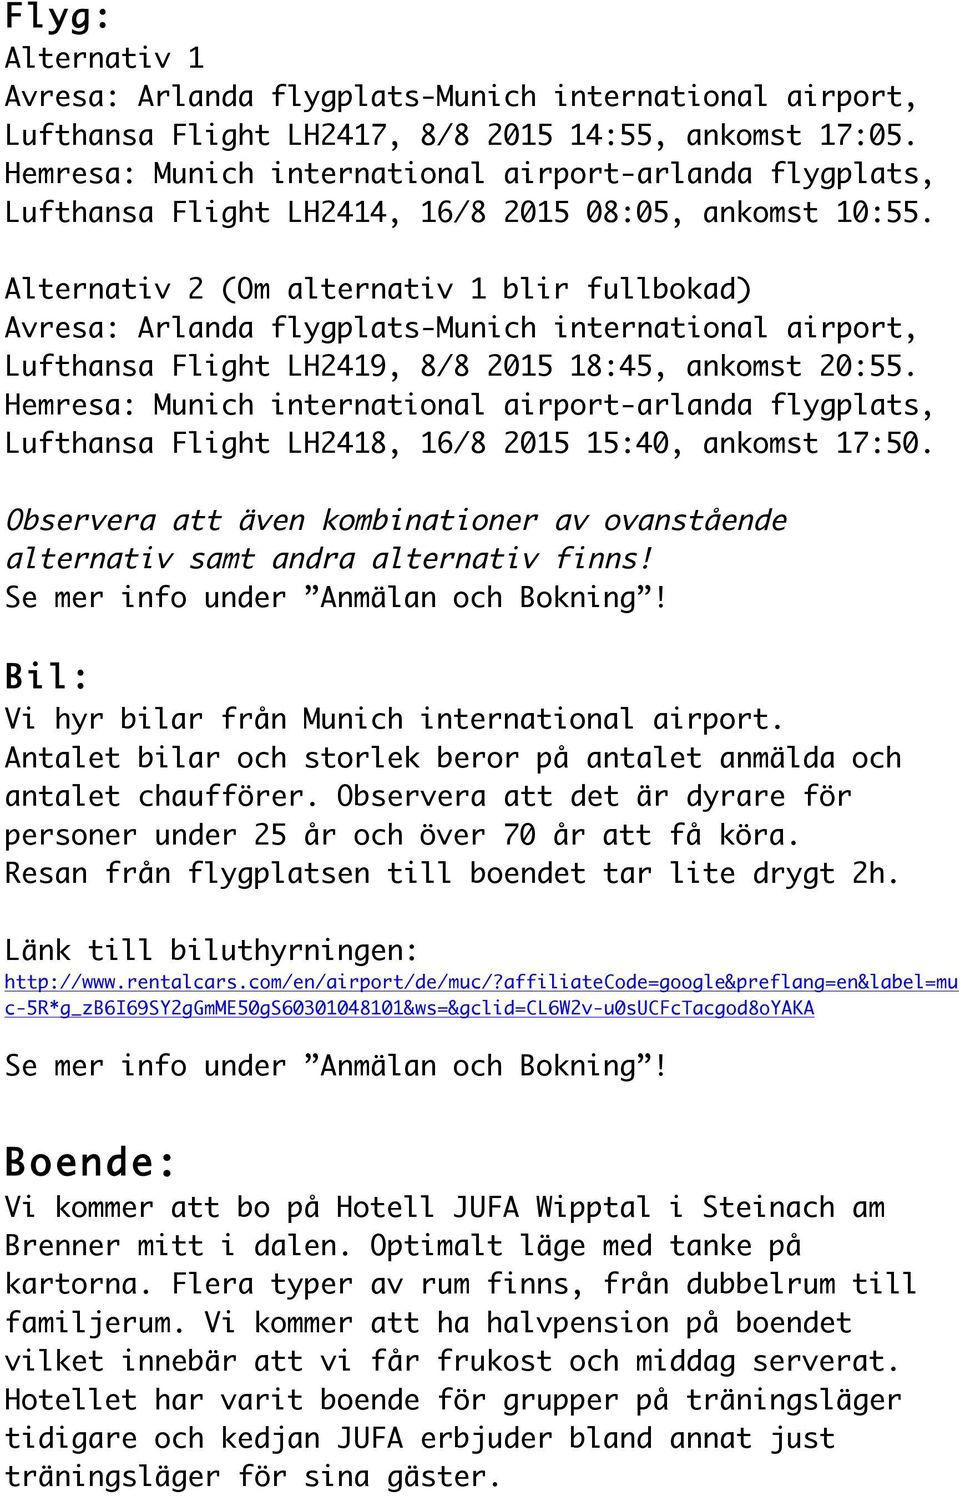 Alternativ 2 (Om alternativ 1 blir fullbokad) Avresa: Arlanda flygplats-munich international airport, Lufthansa Flight LH2419, 8/8 2015 18:45, ankomst 20:55.